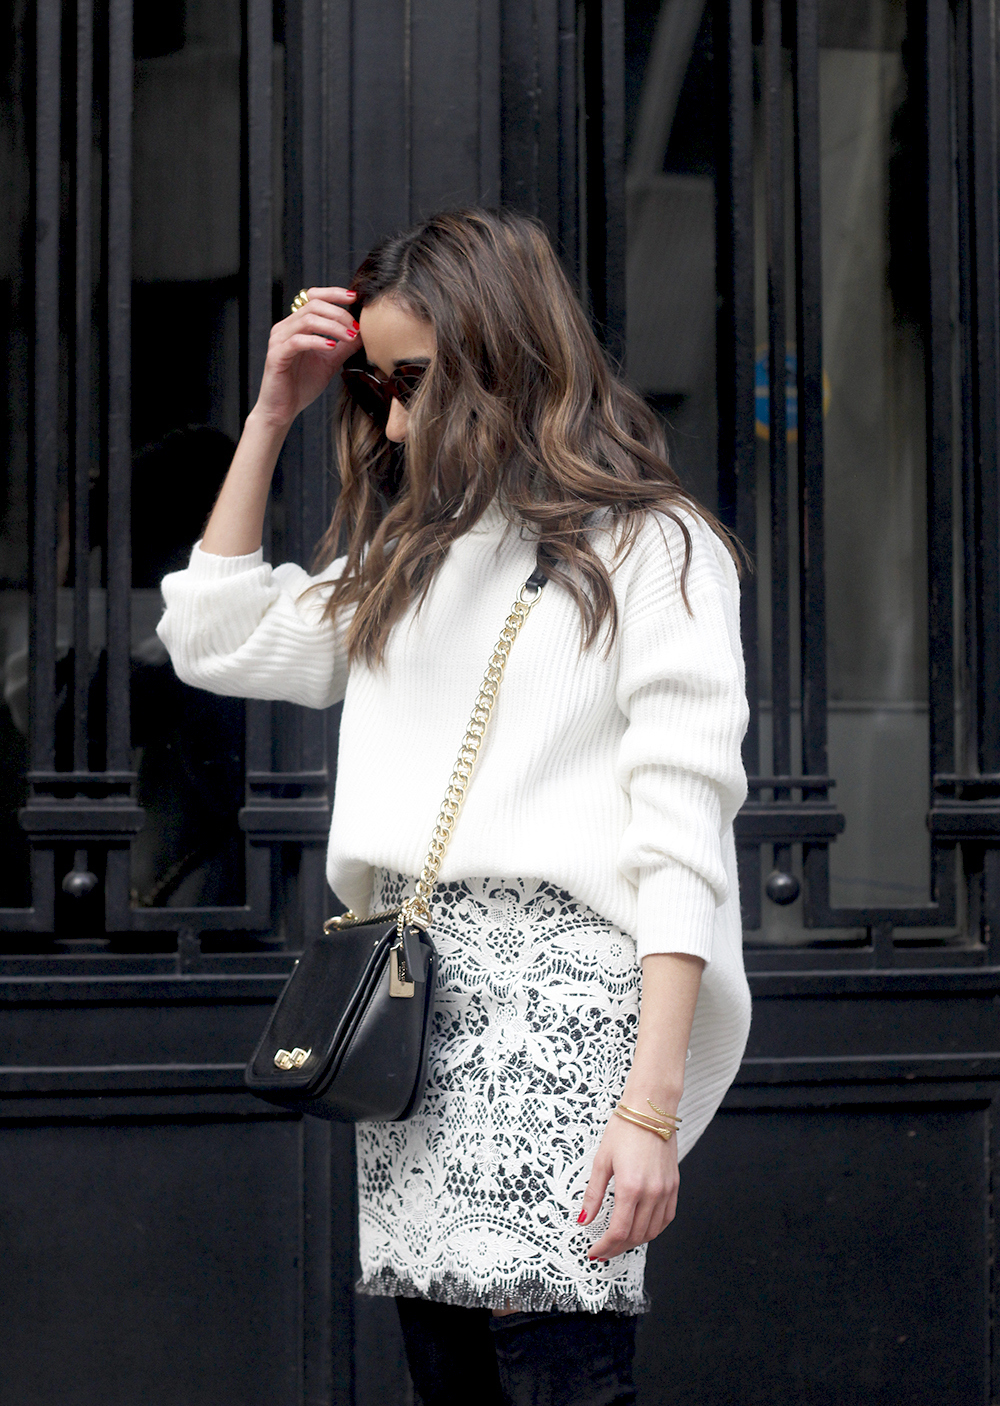 black and white lace skirt over the knee boots white turtleneck jersey outfit style winter07